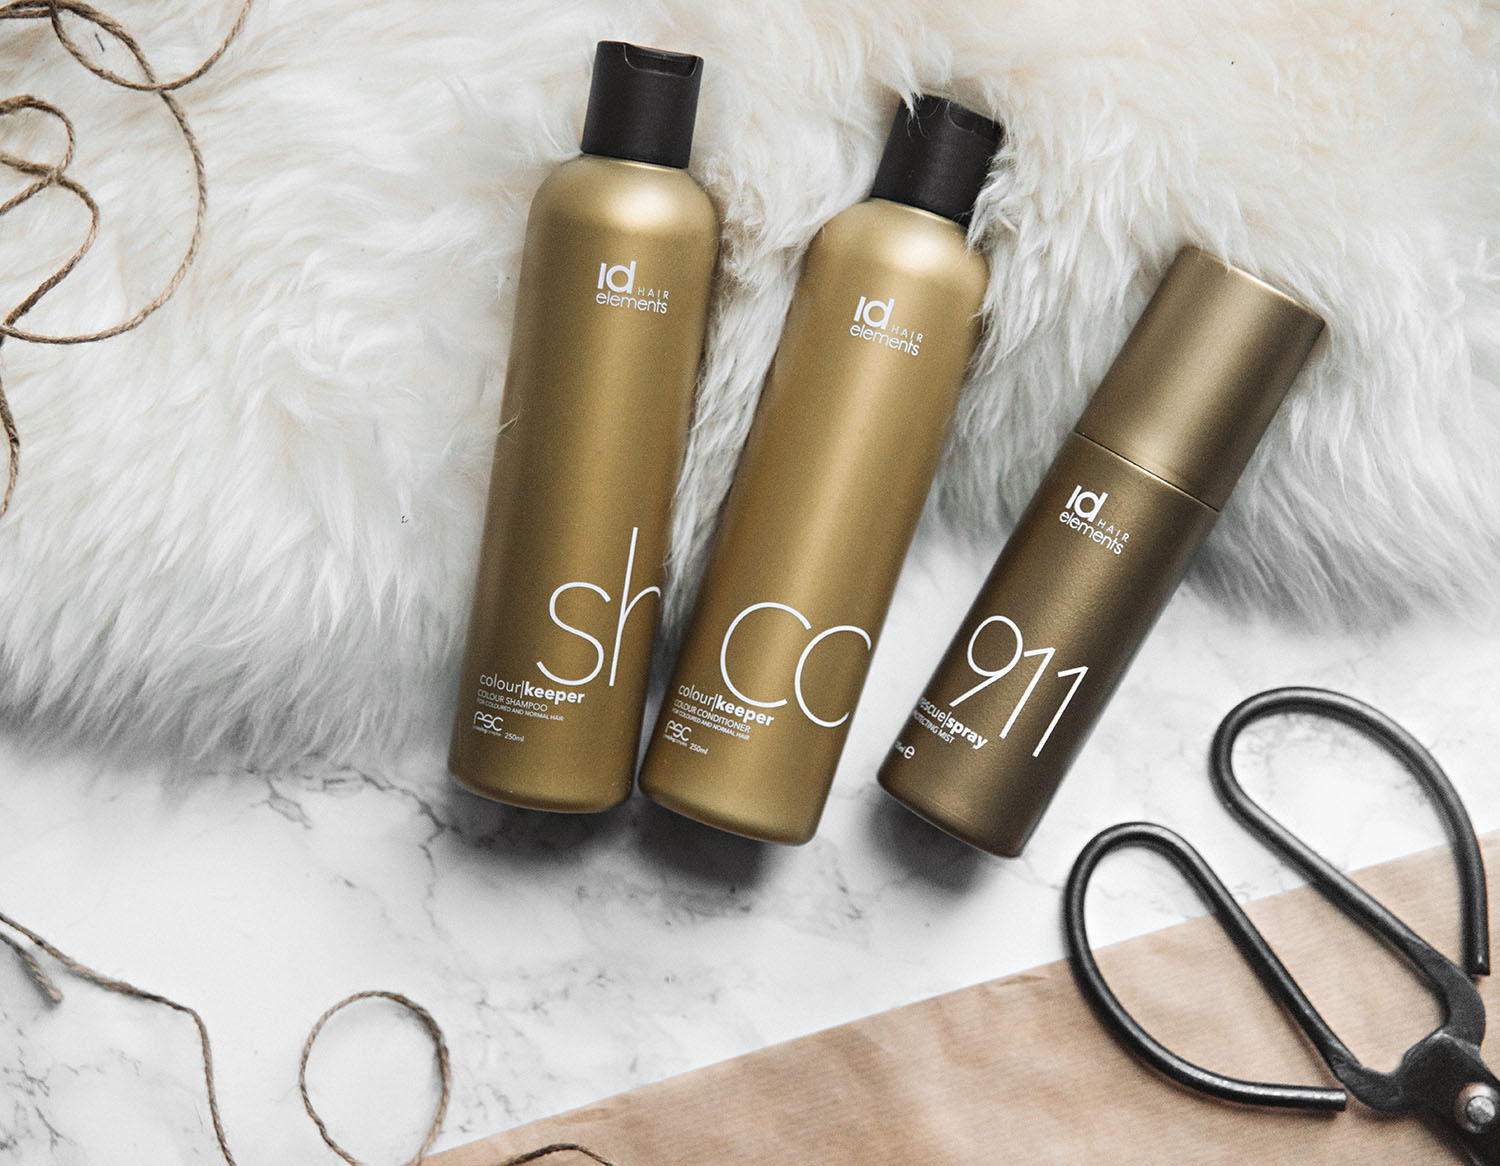 Id HAIR Colour Keeper Shampoo, Conditioner & Rescue Spray + Tangle Teezer